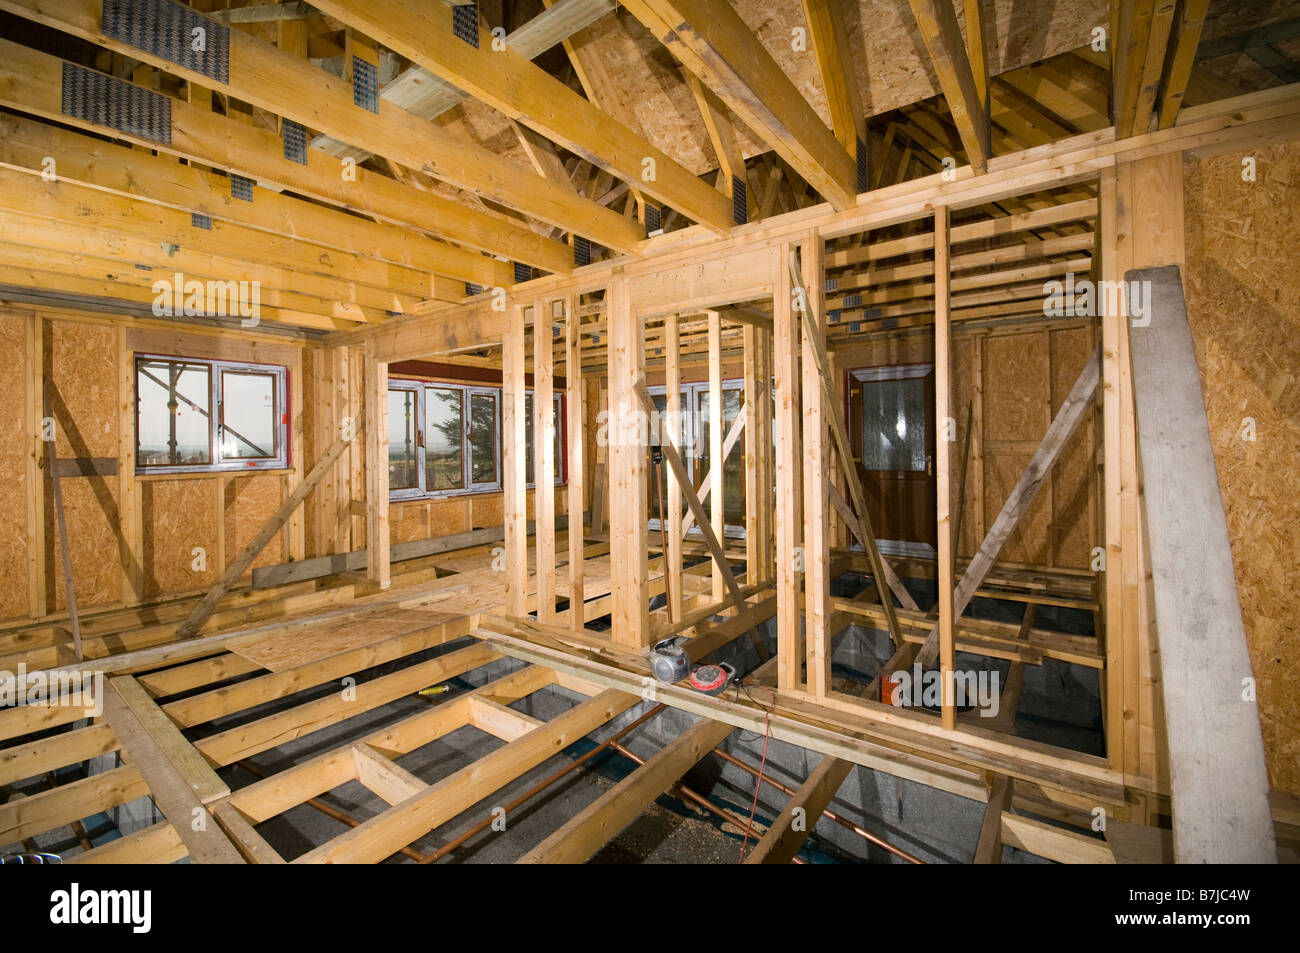 Interior of a timber framed house under construction in the village ...